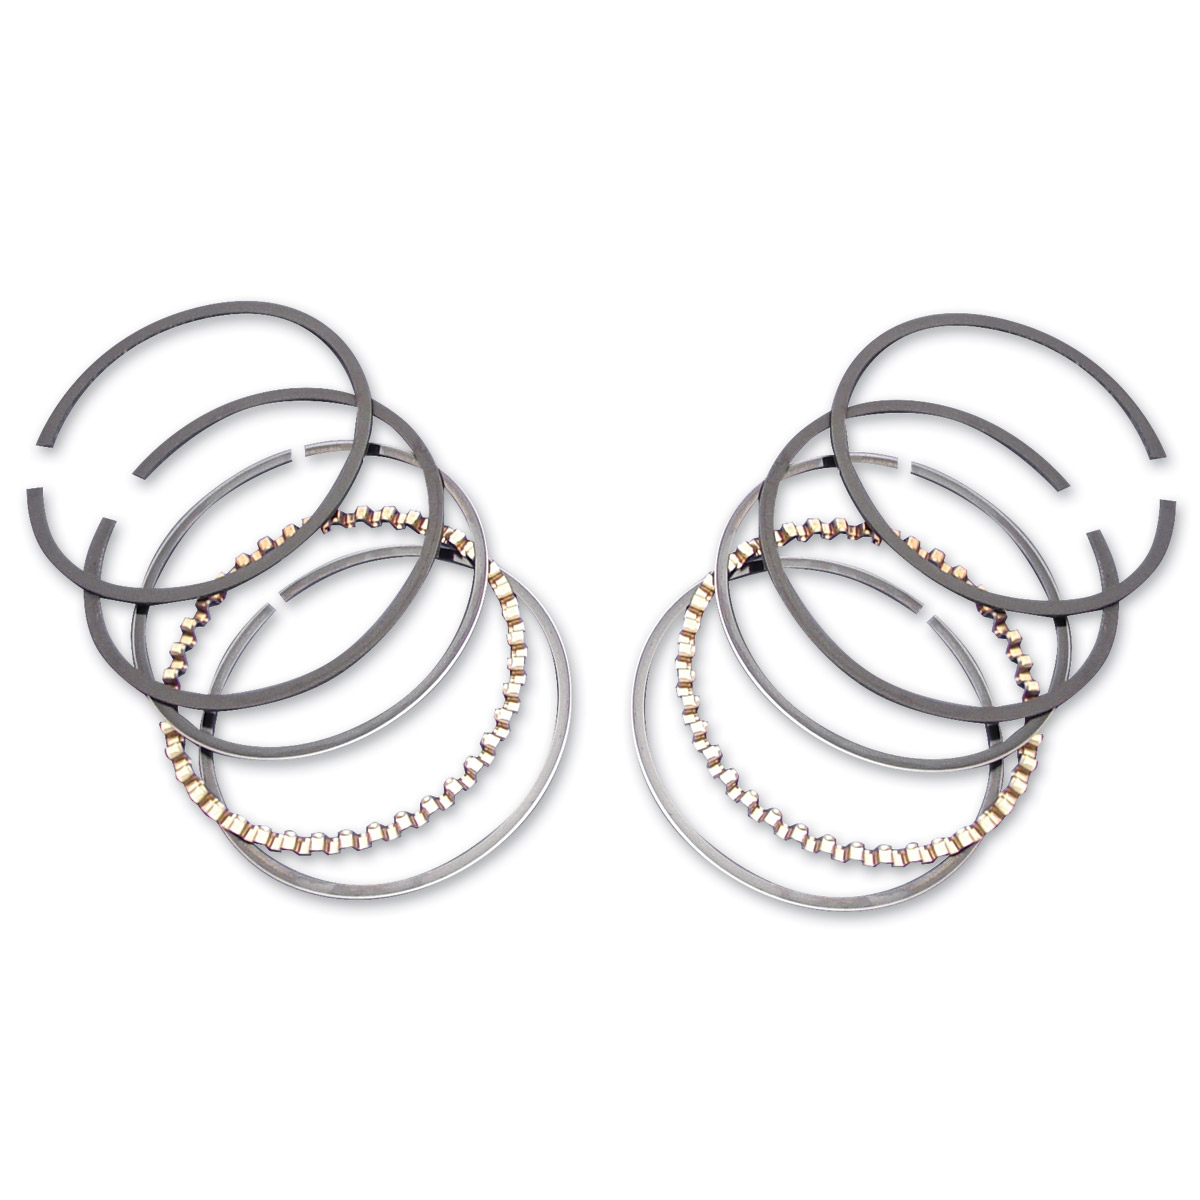 V Twin Manufacturing 74 Ring Set